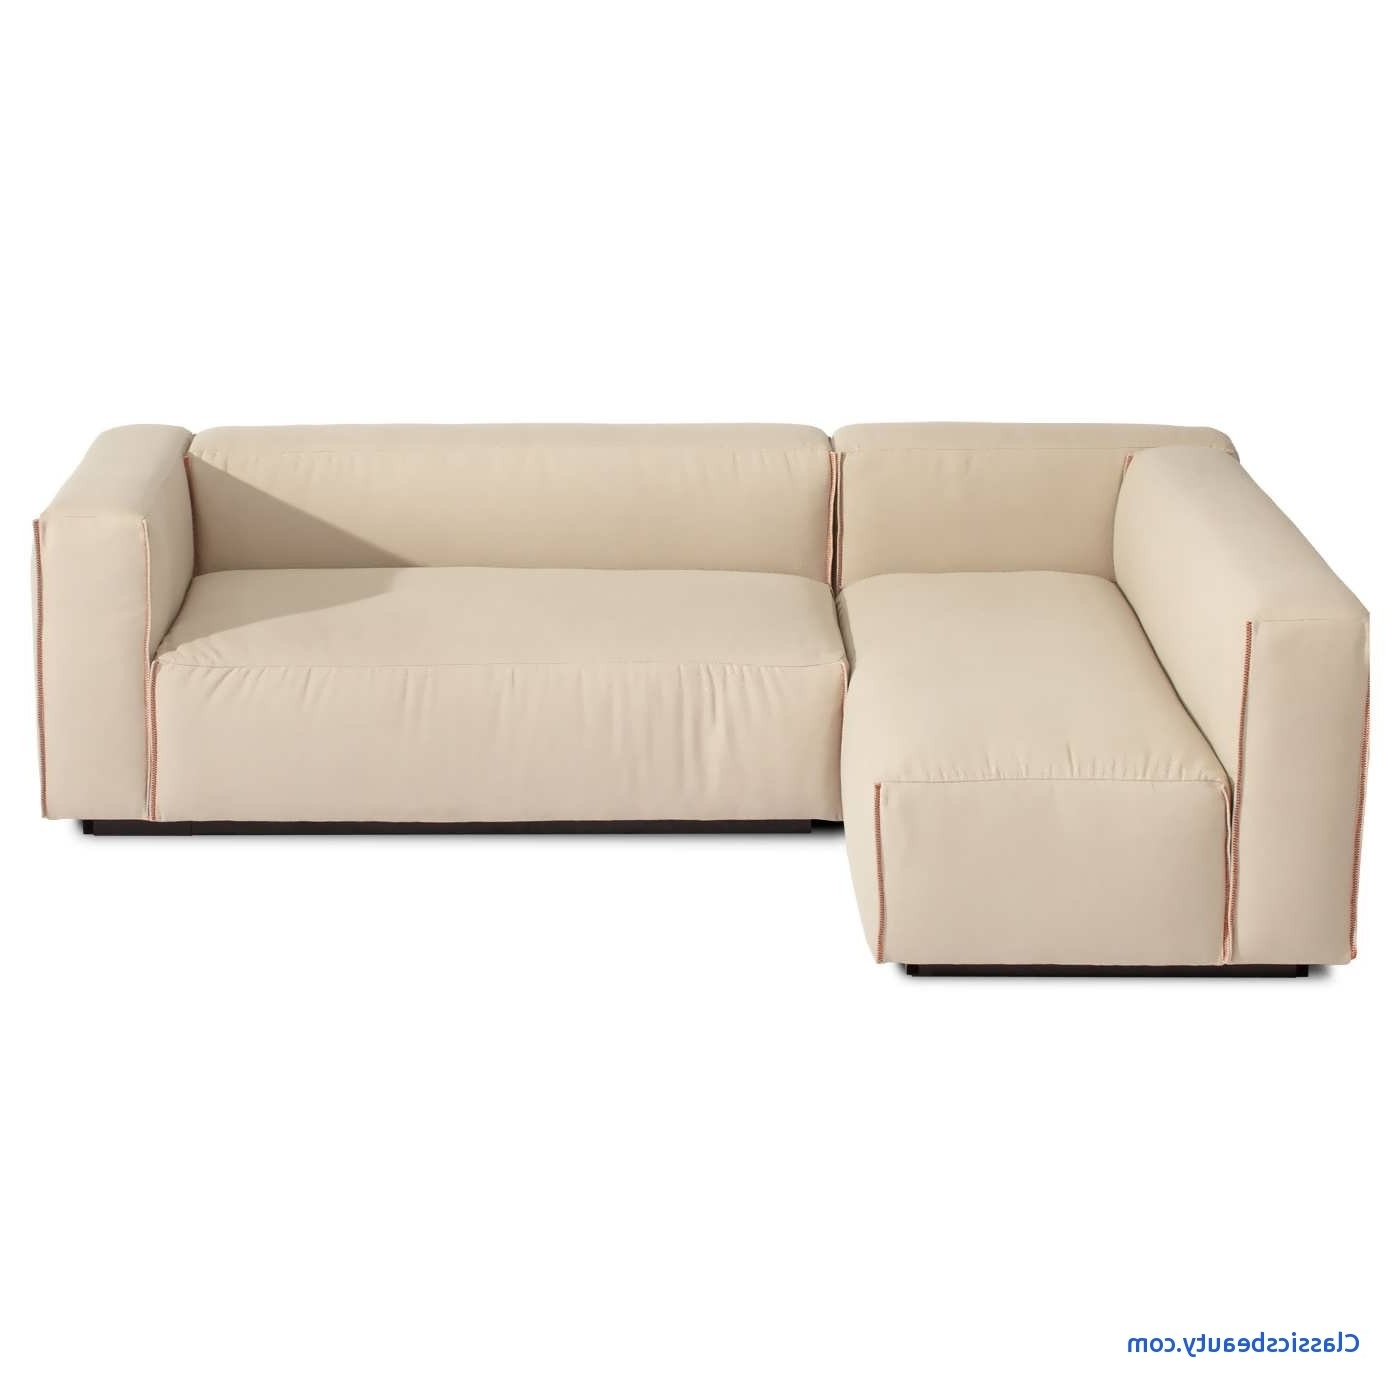 Small Sofas Elegant Sofa Corner Sofa Sectional Sleeper Sofa Chaise Regarding Widely Used Small Sofa Chaises (View 12 of 15)